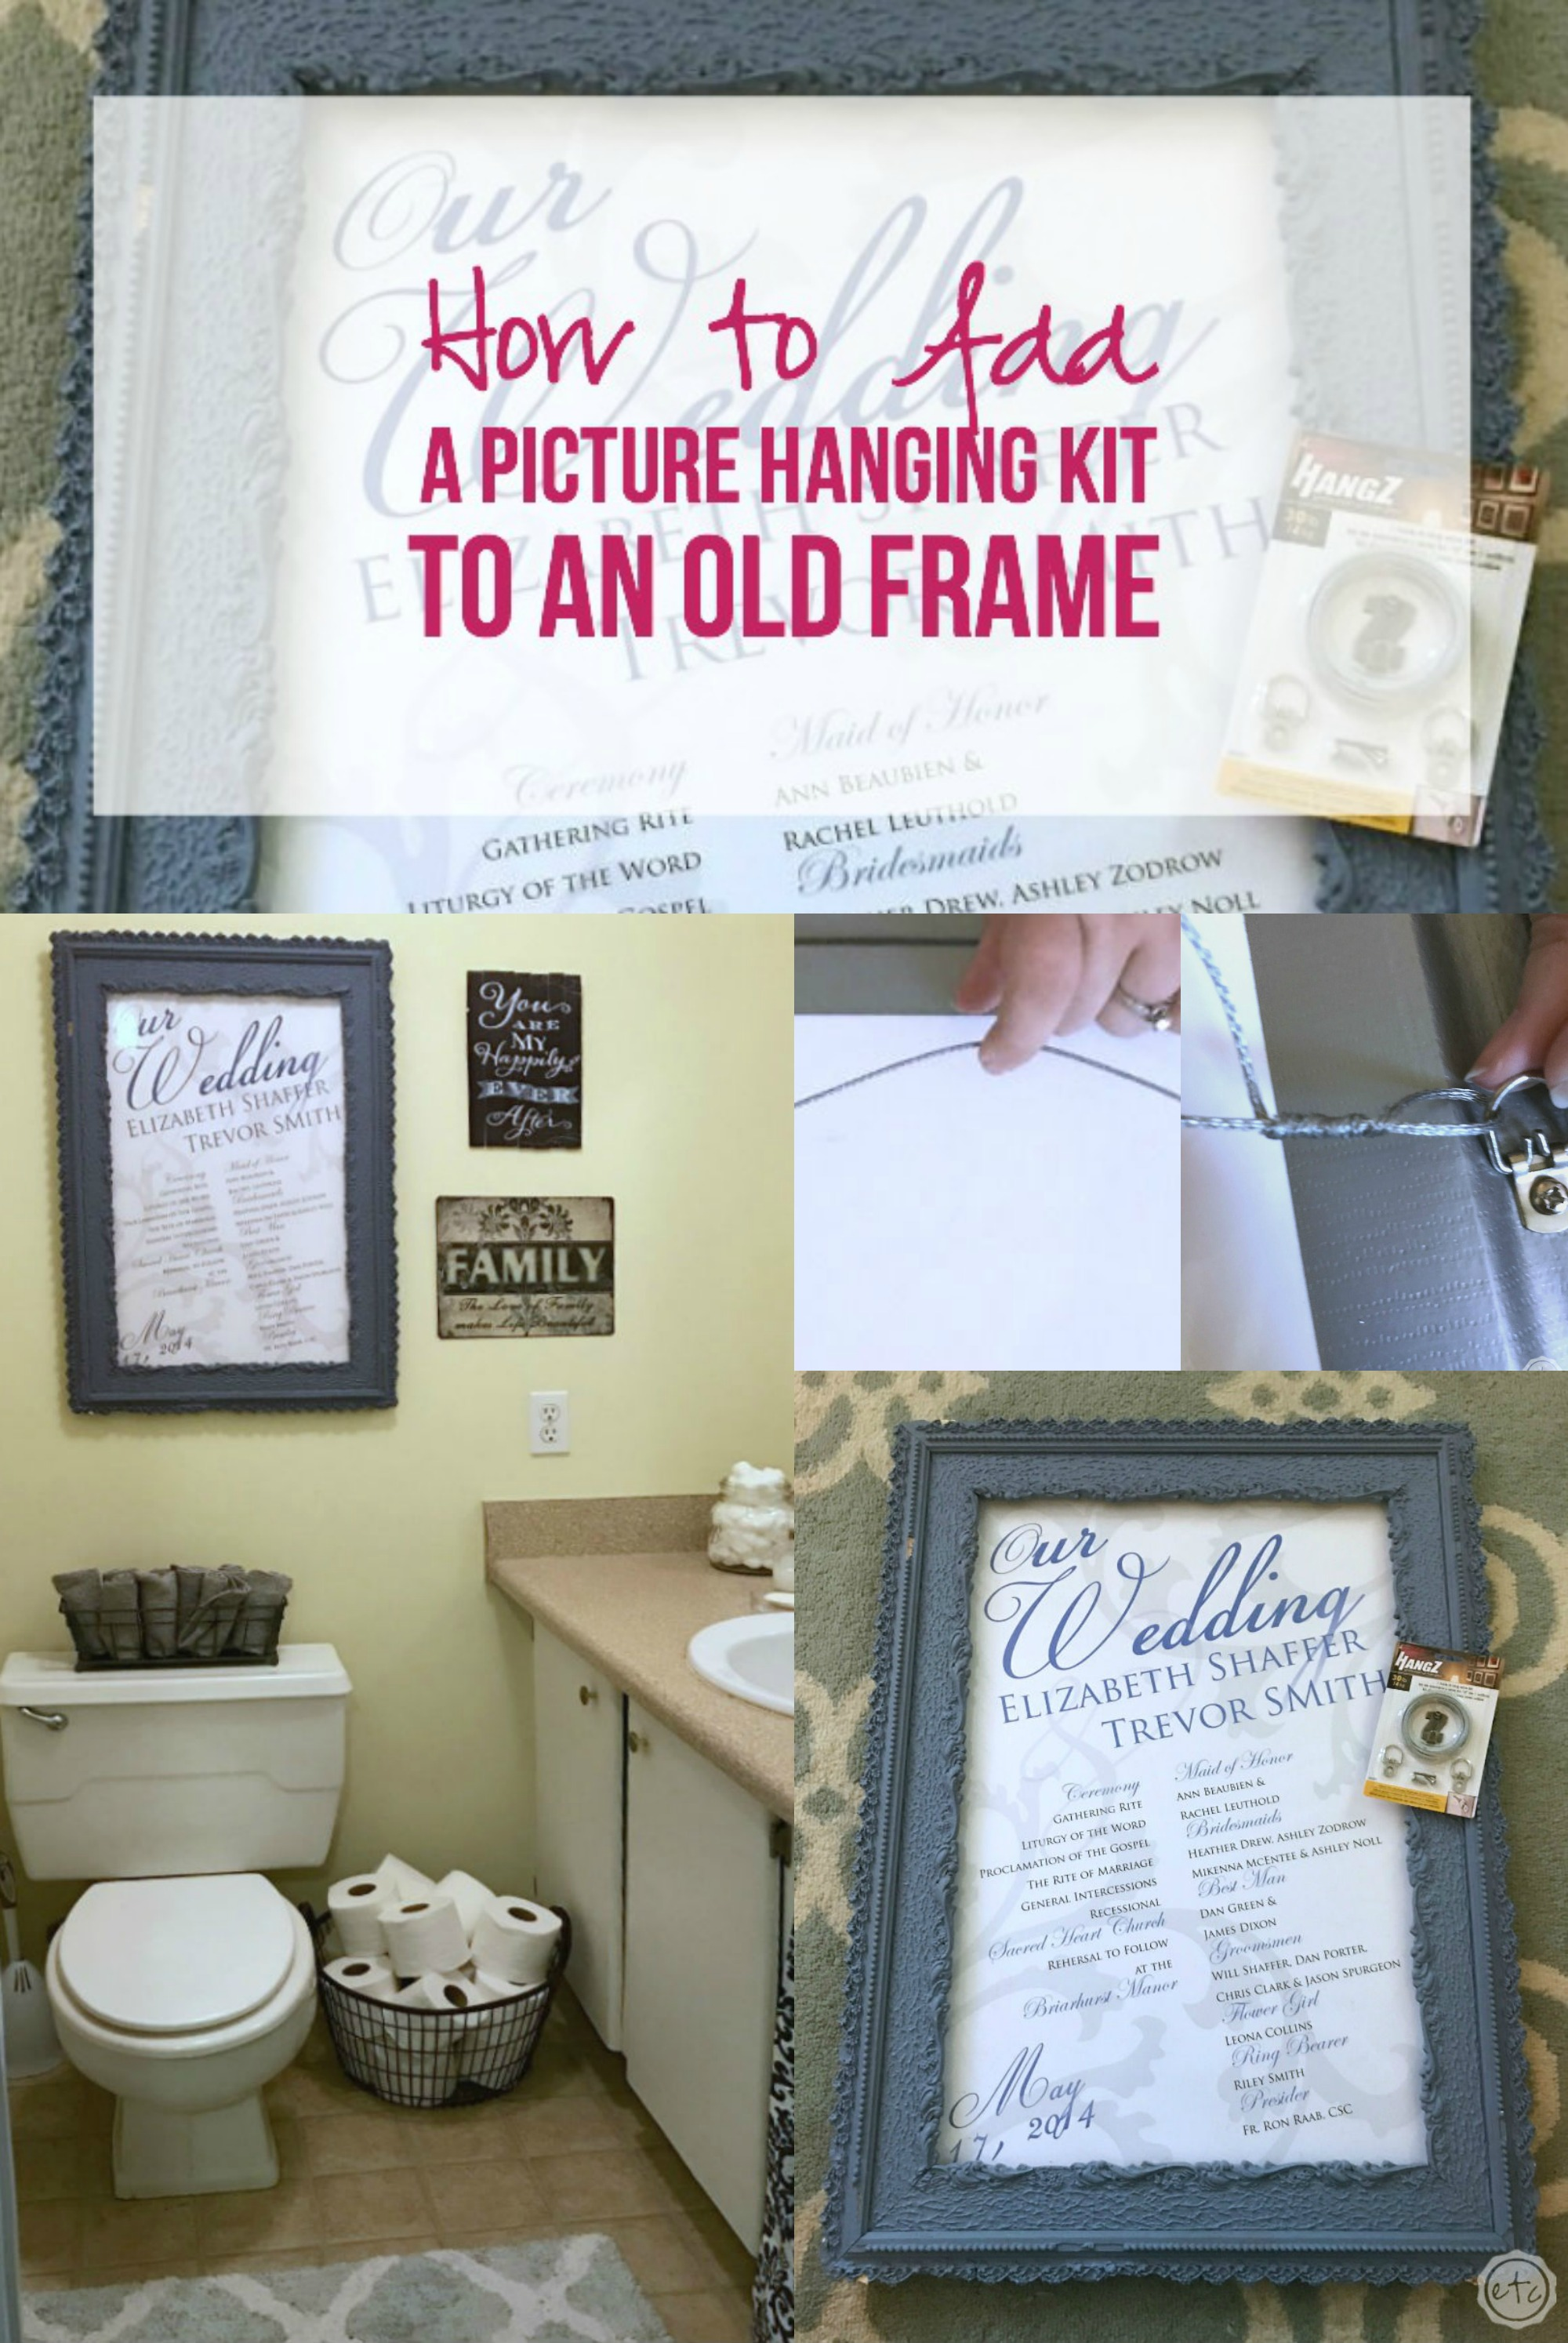 How to Add a Picture Hanging Kit to an Old Frame